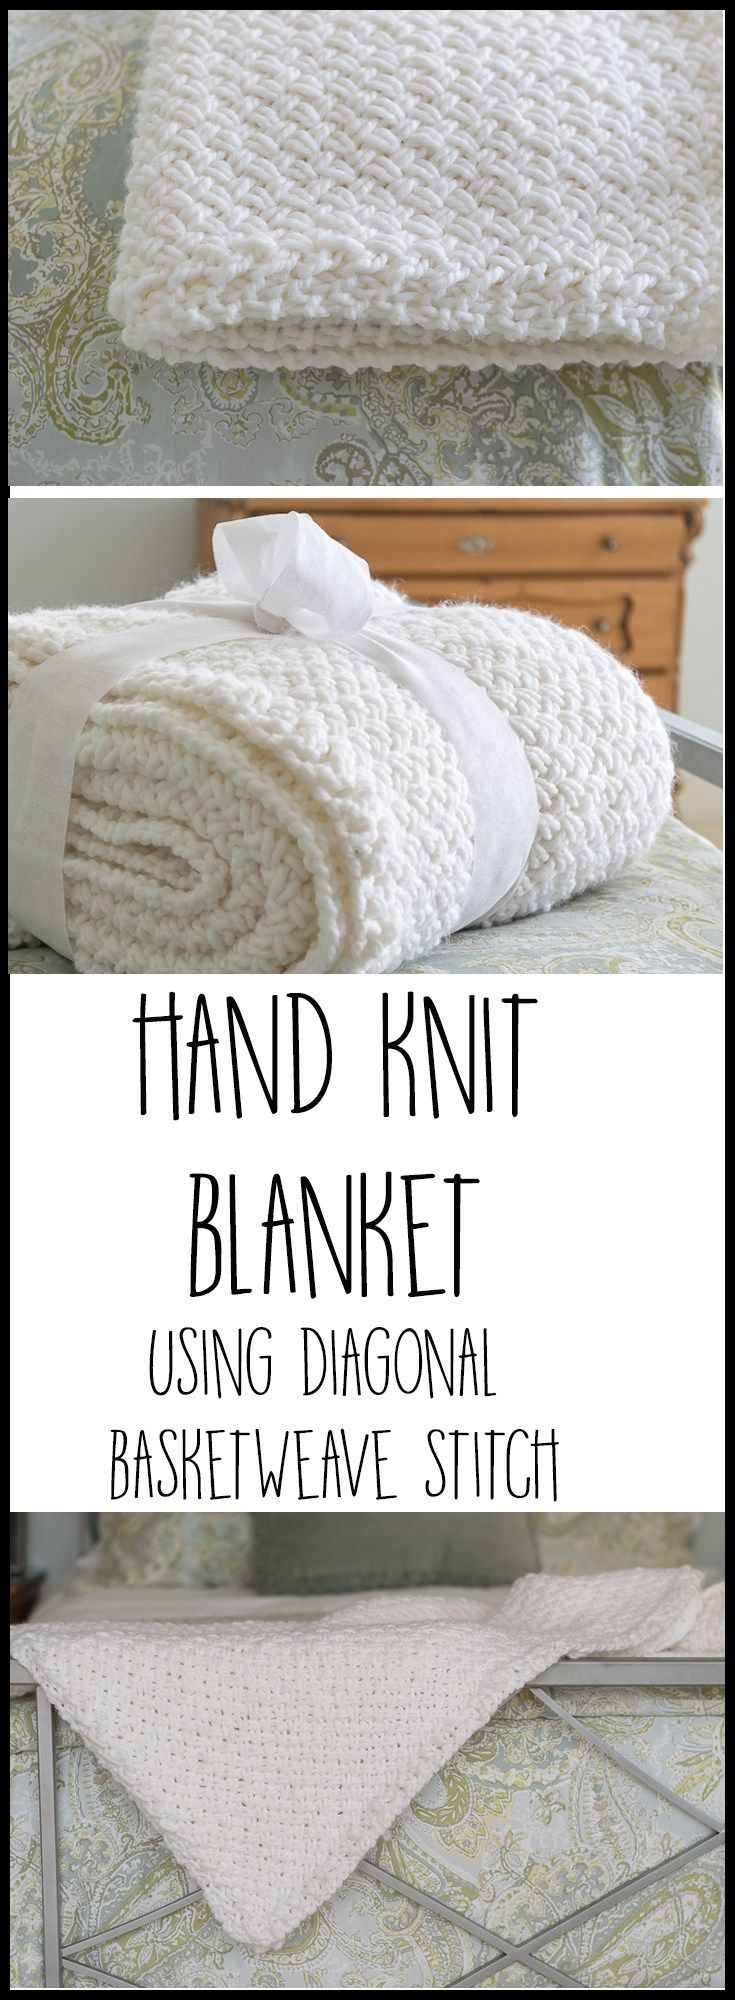 Instructions And A Quick Video Showing How To Make This Knit